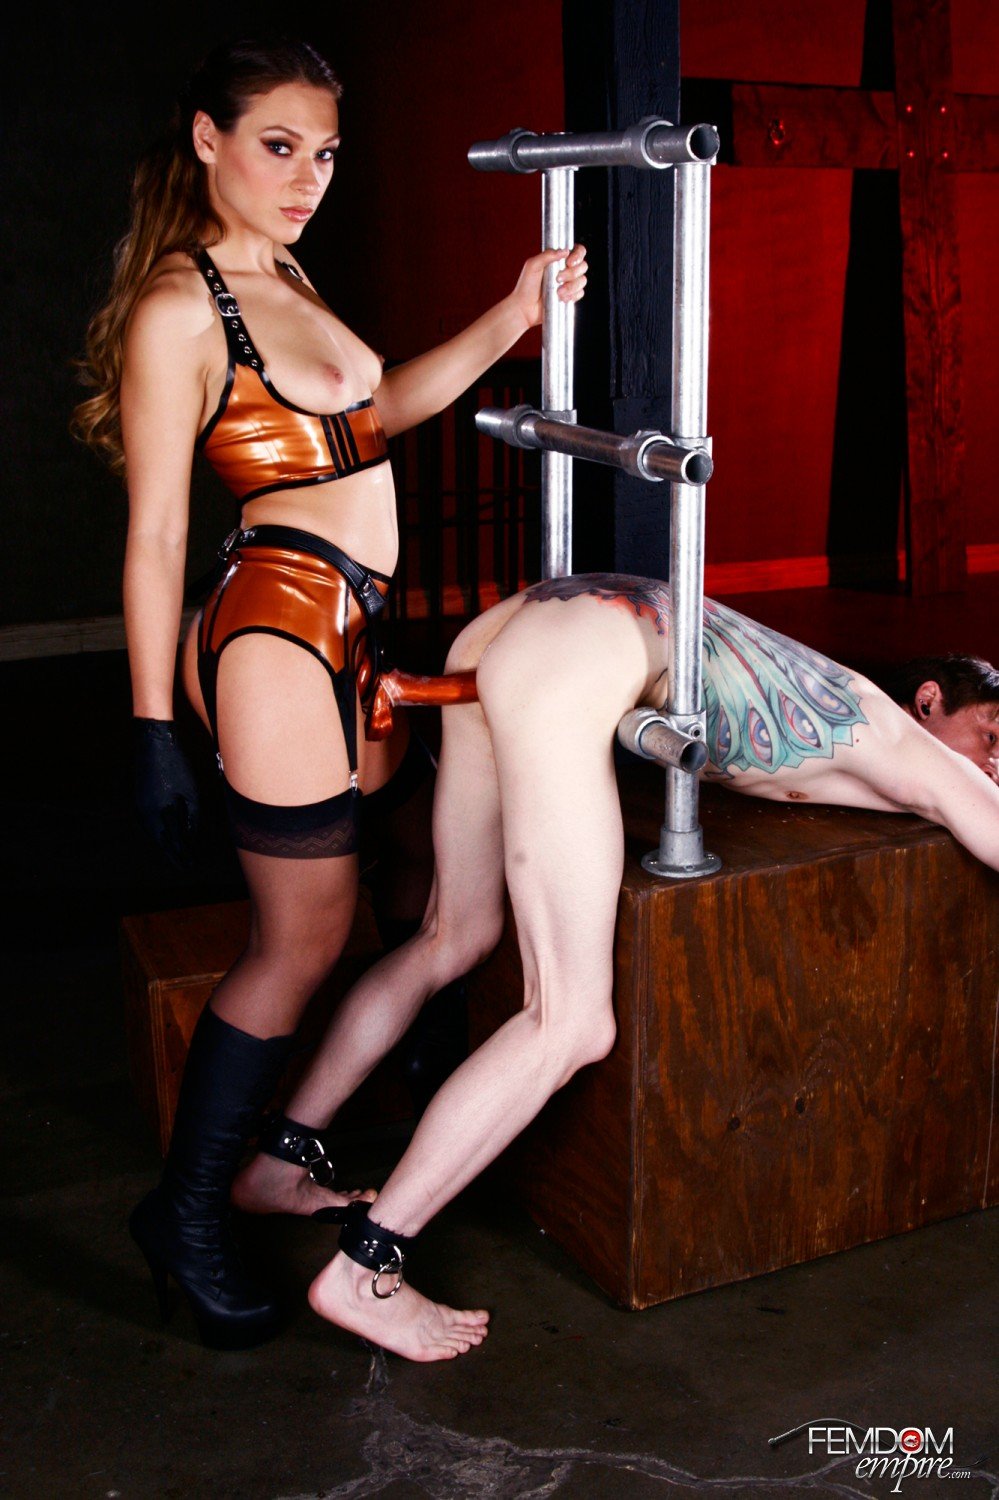 image Strap on mistress pegging her slave